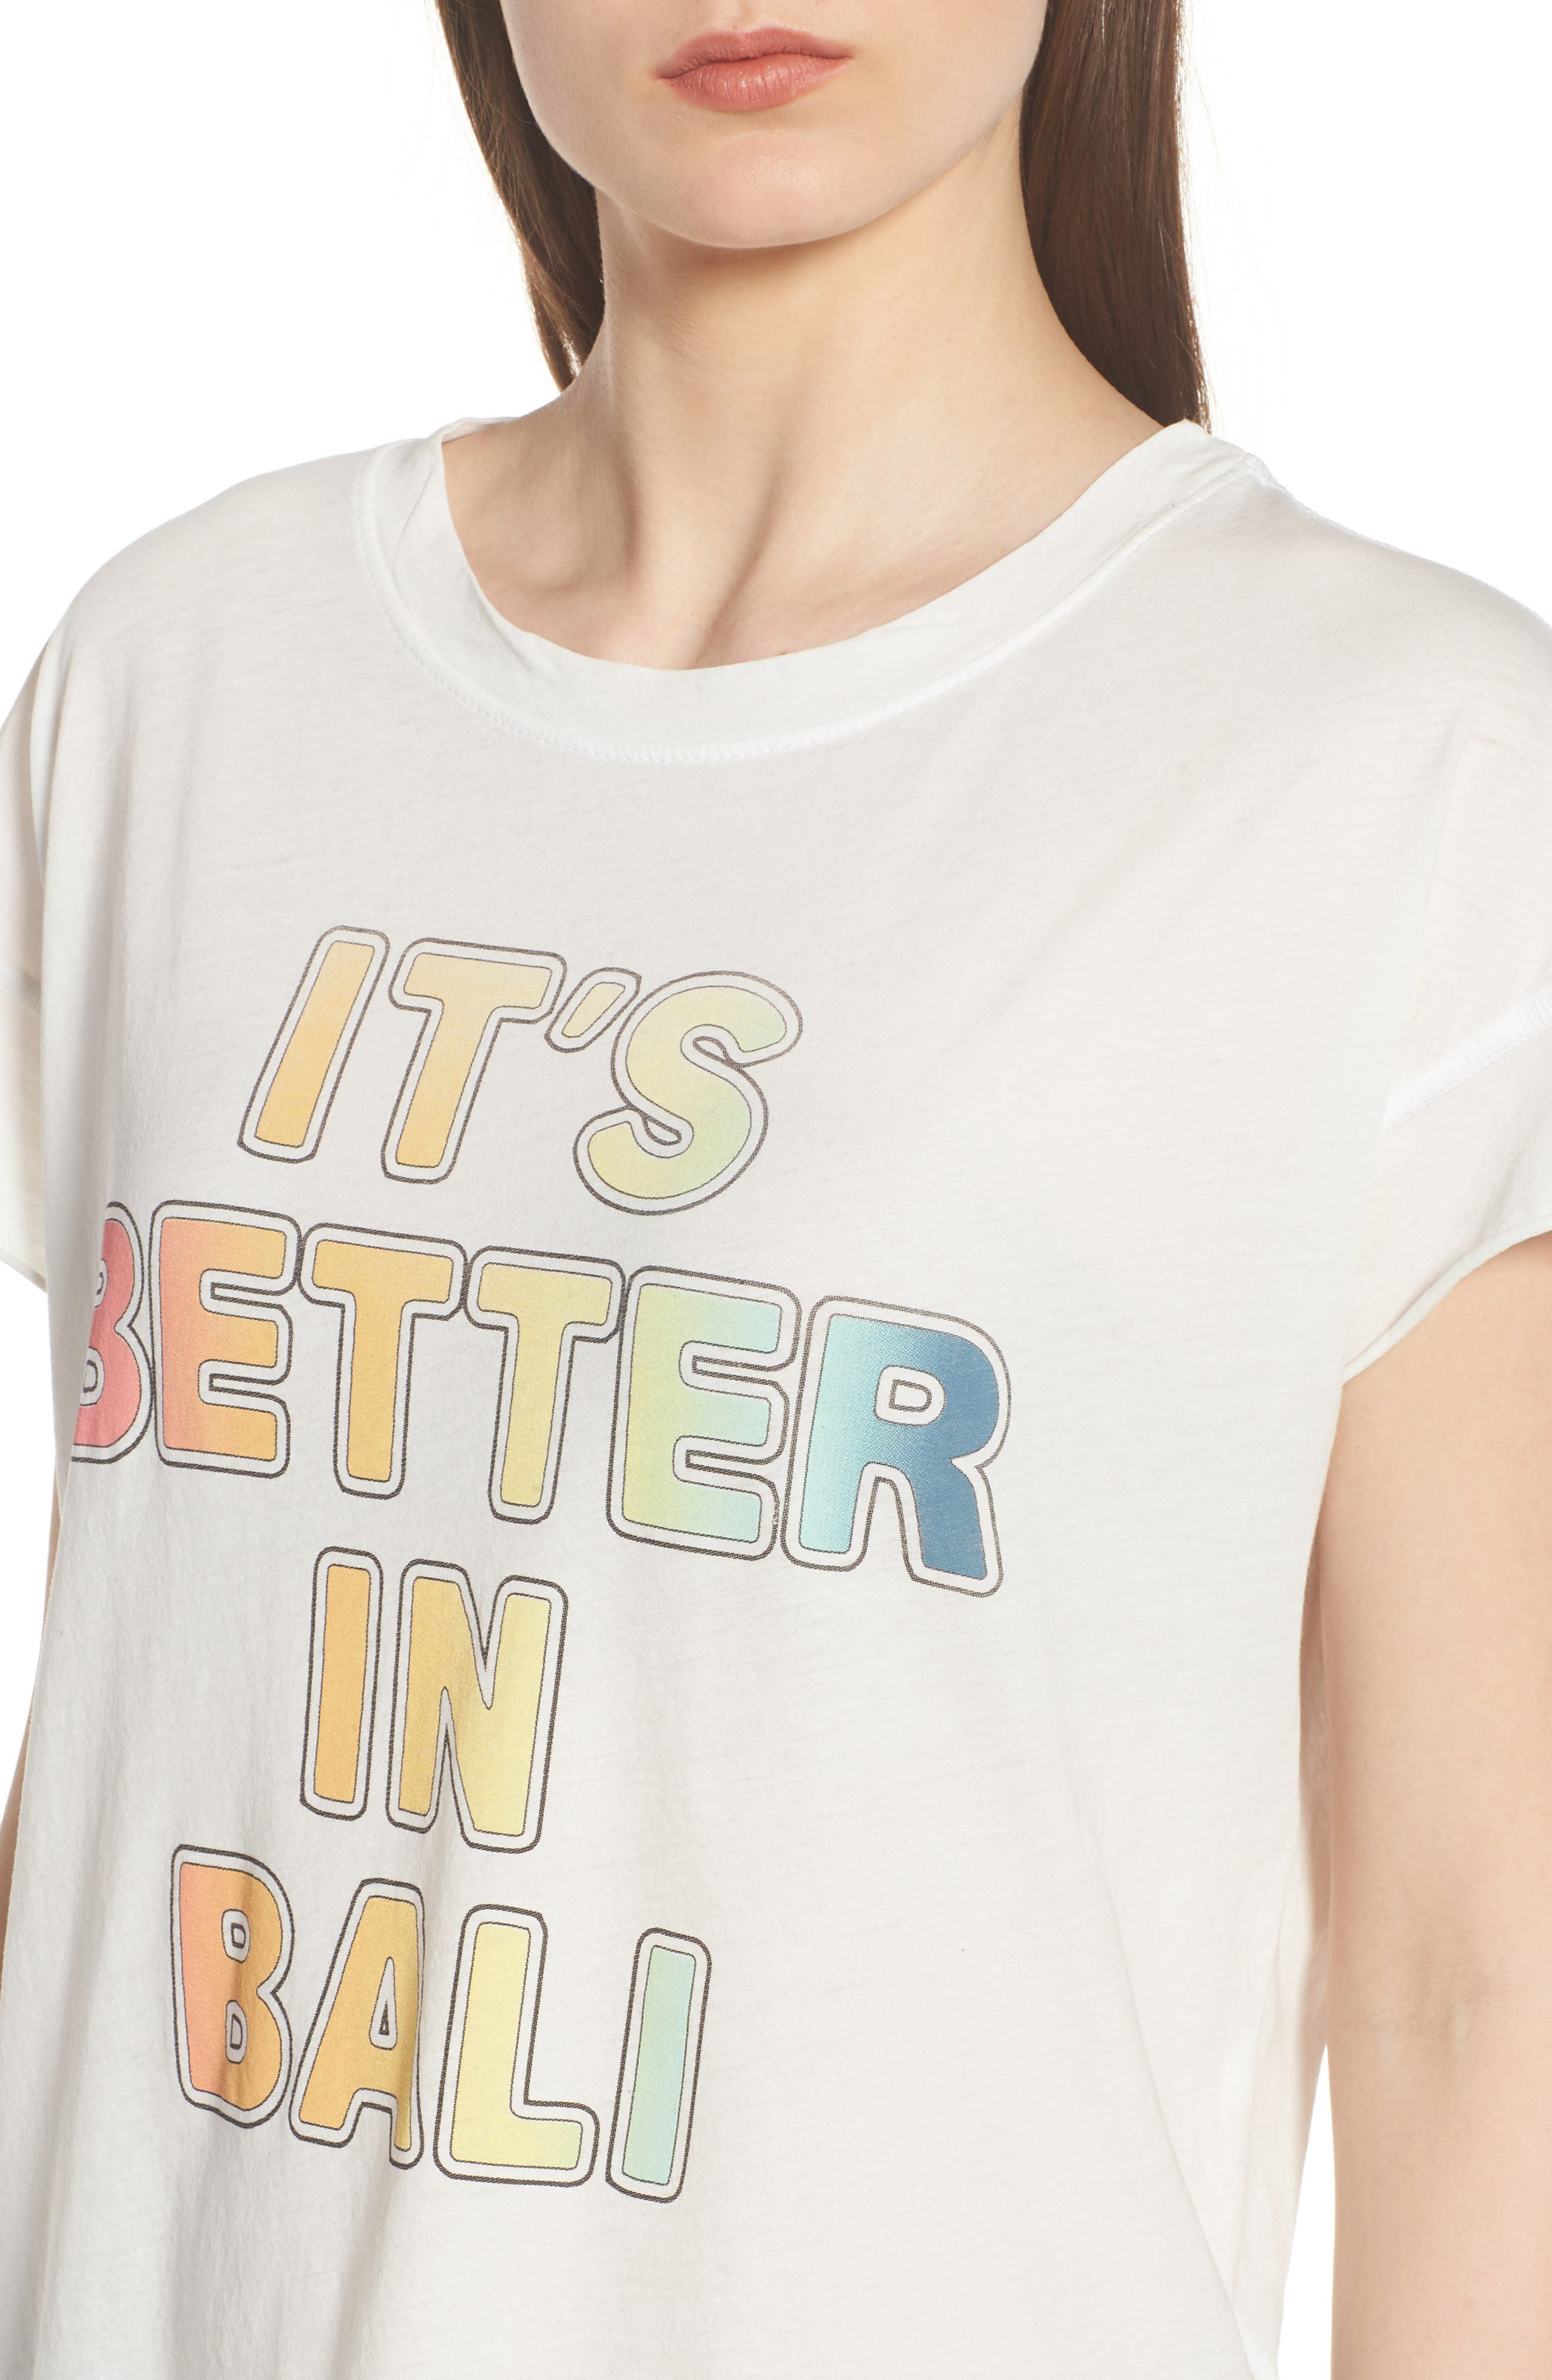 Better in Bali Tee,                             Alternate thumbnail 4, color,